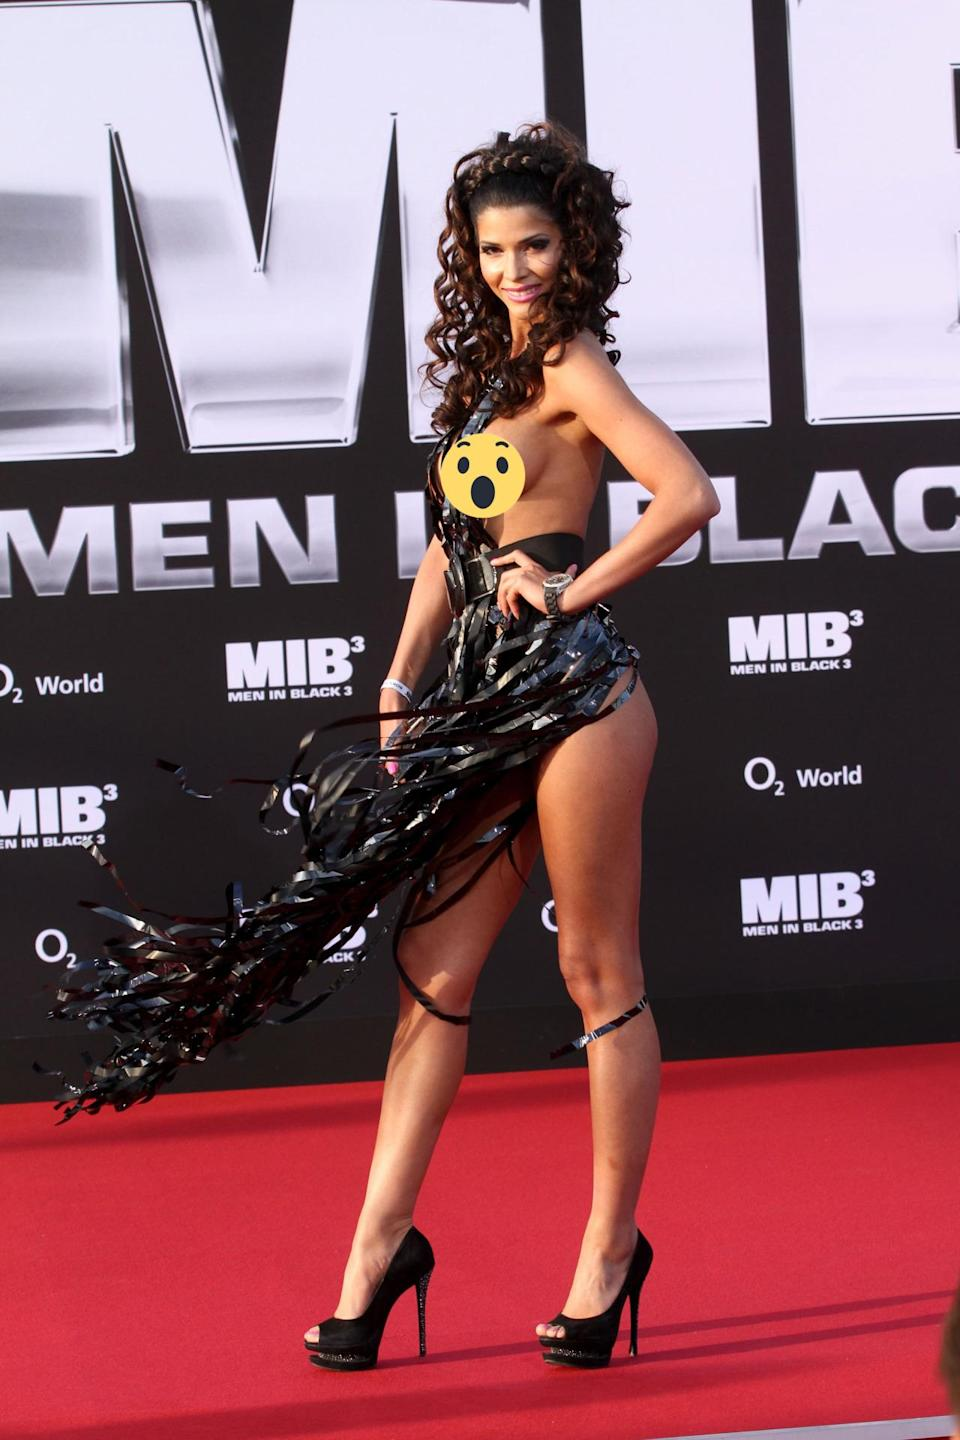 <p>At the world premiere of 'Men in Black 3′, German actress Micaela Schaefer could've done without the weird, film tape dress. After all, she showed enough skin. <i>[Photo: Getty]</i></p>